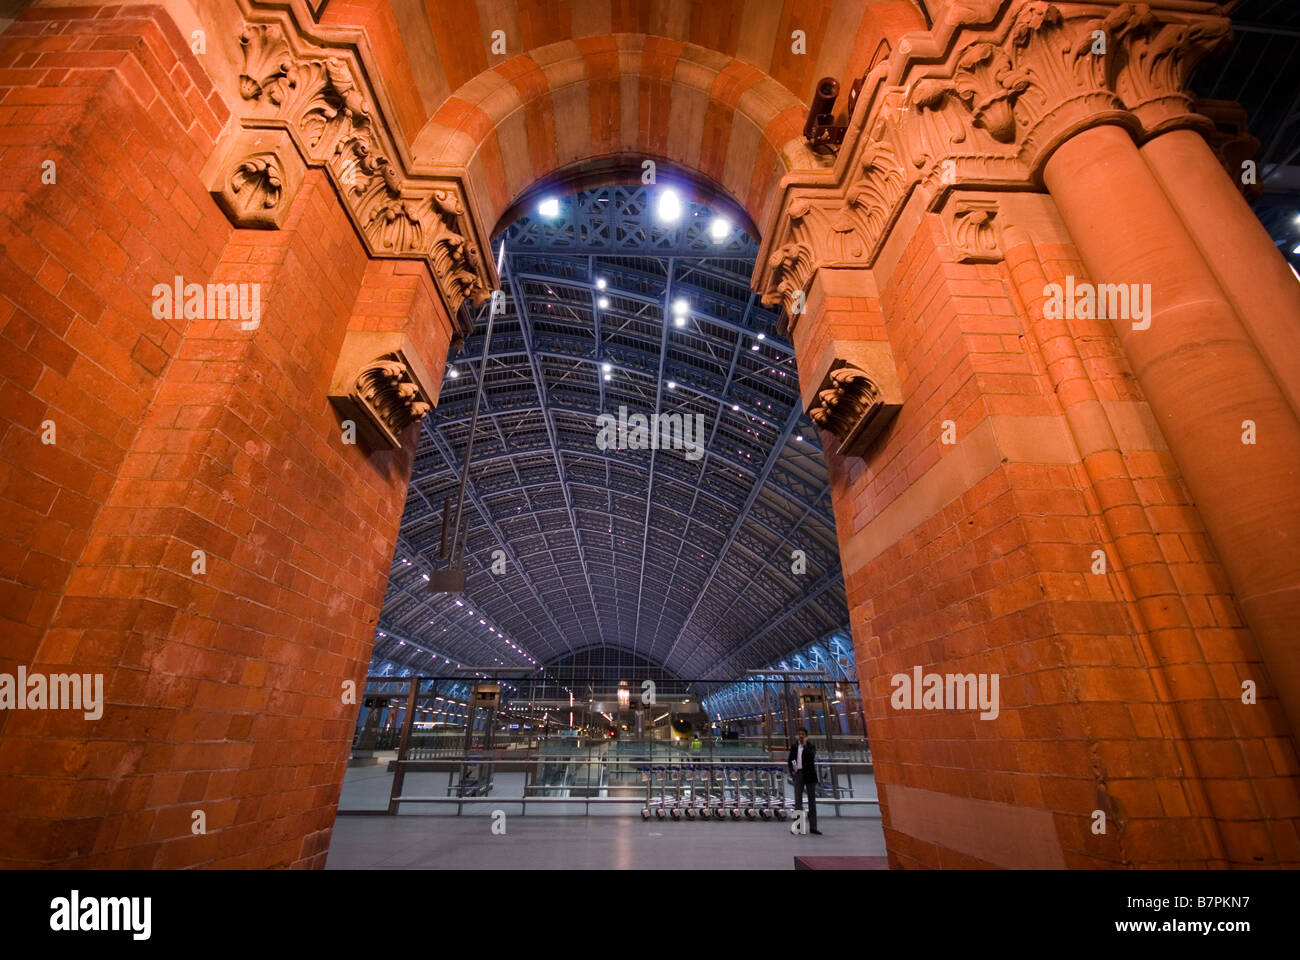 St. Pancras International Station, in November 2008. - Stock Image